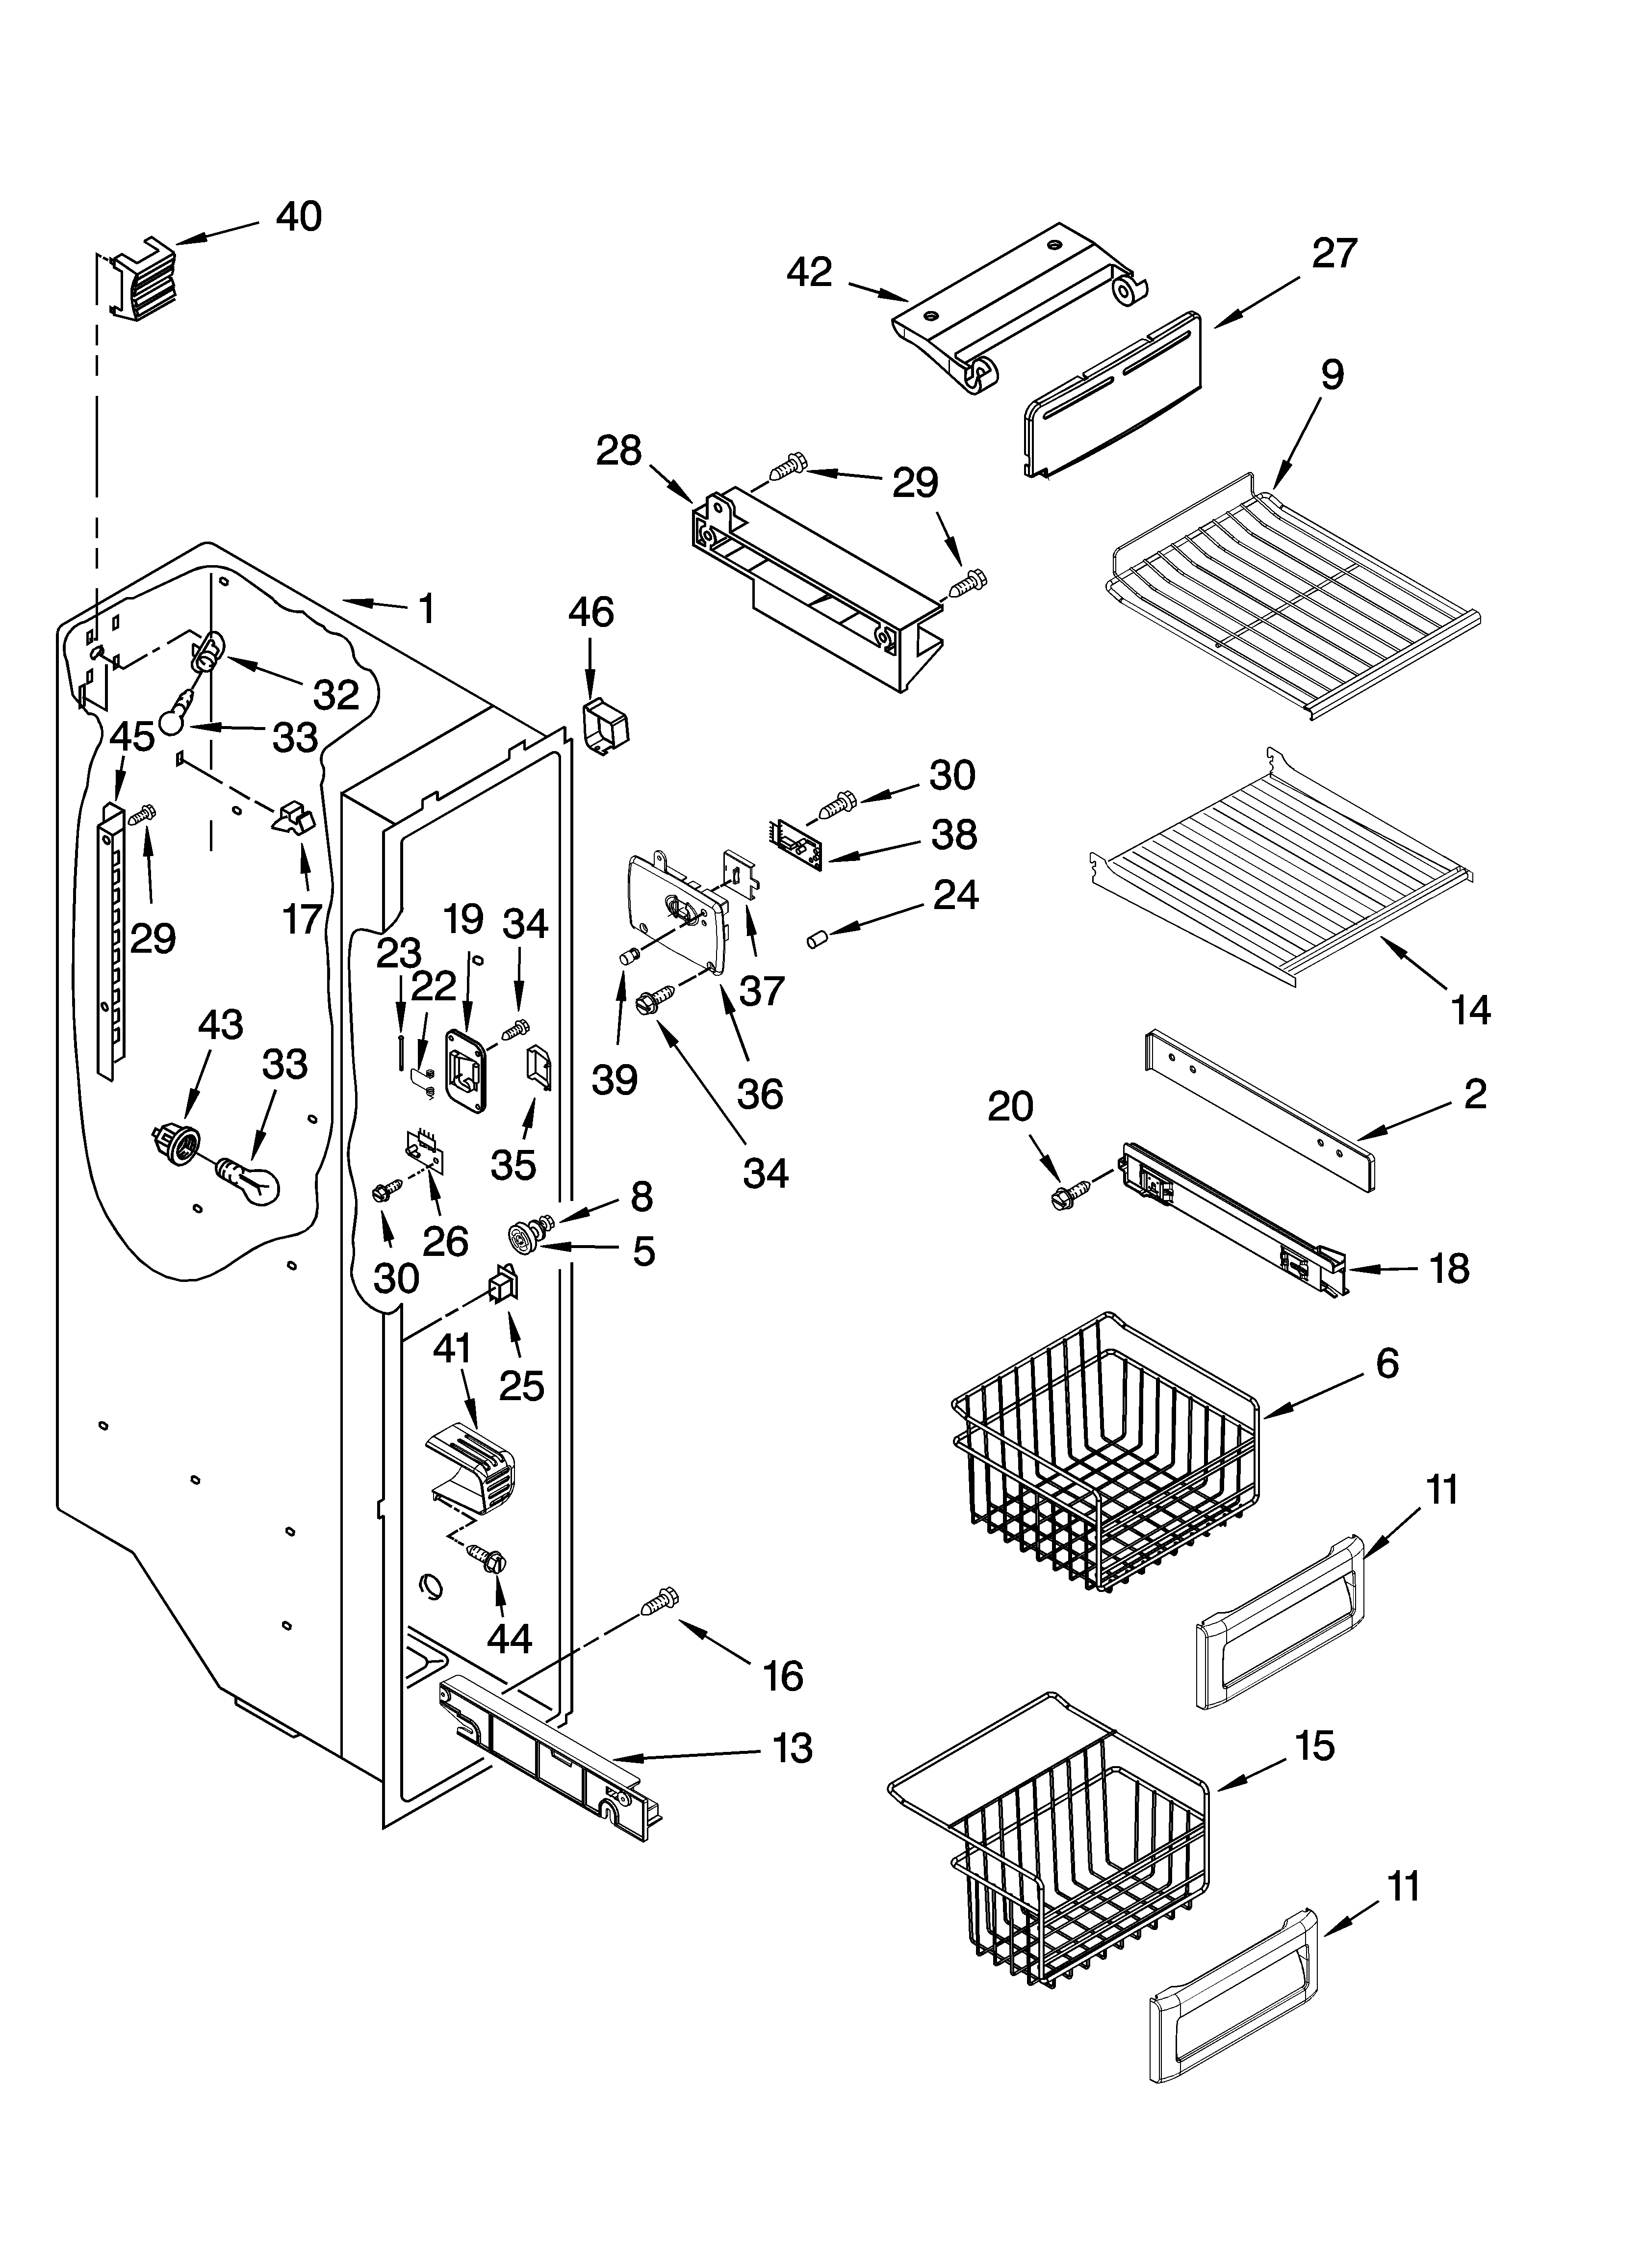 FREEZER LINER PARTS Diagram & Parts List for Model